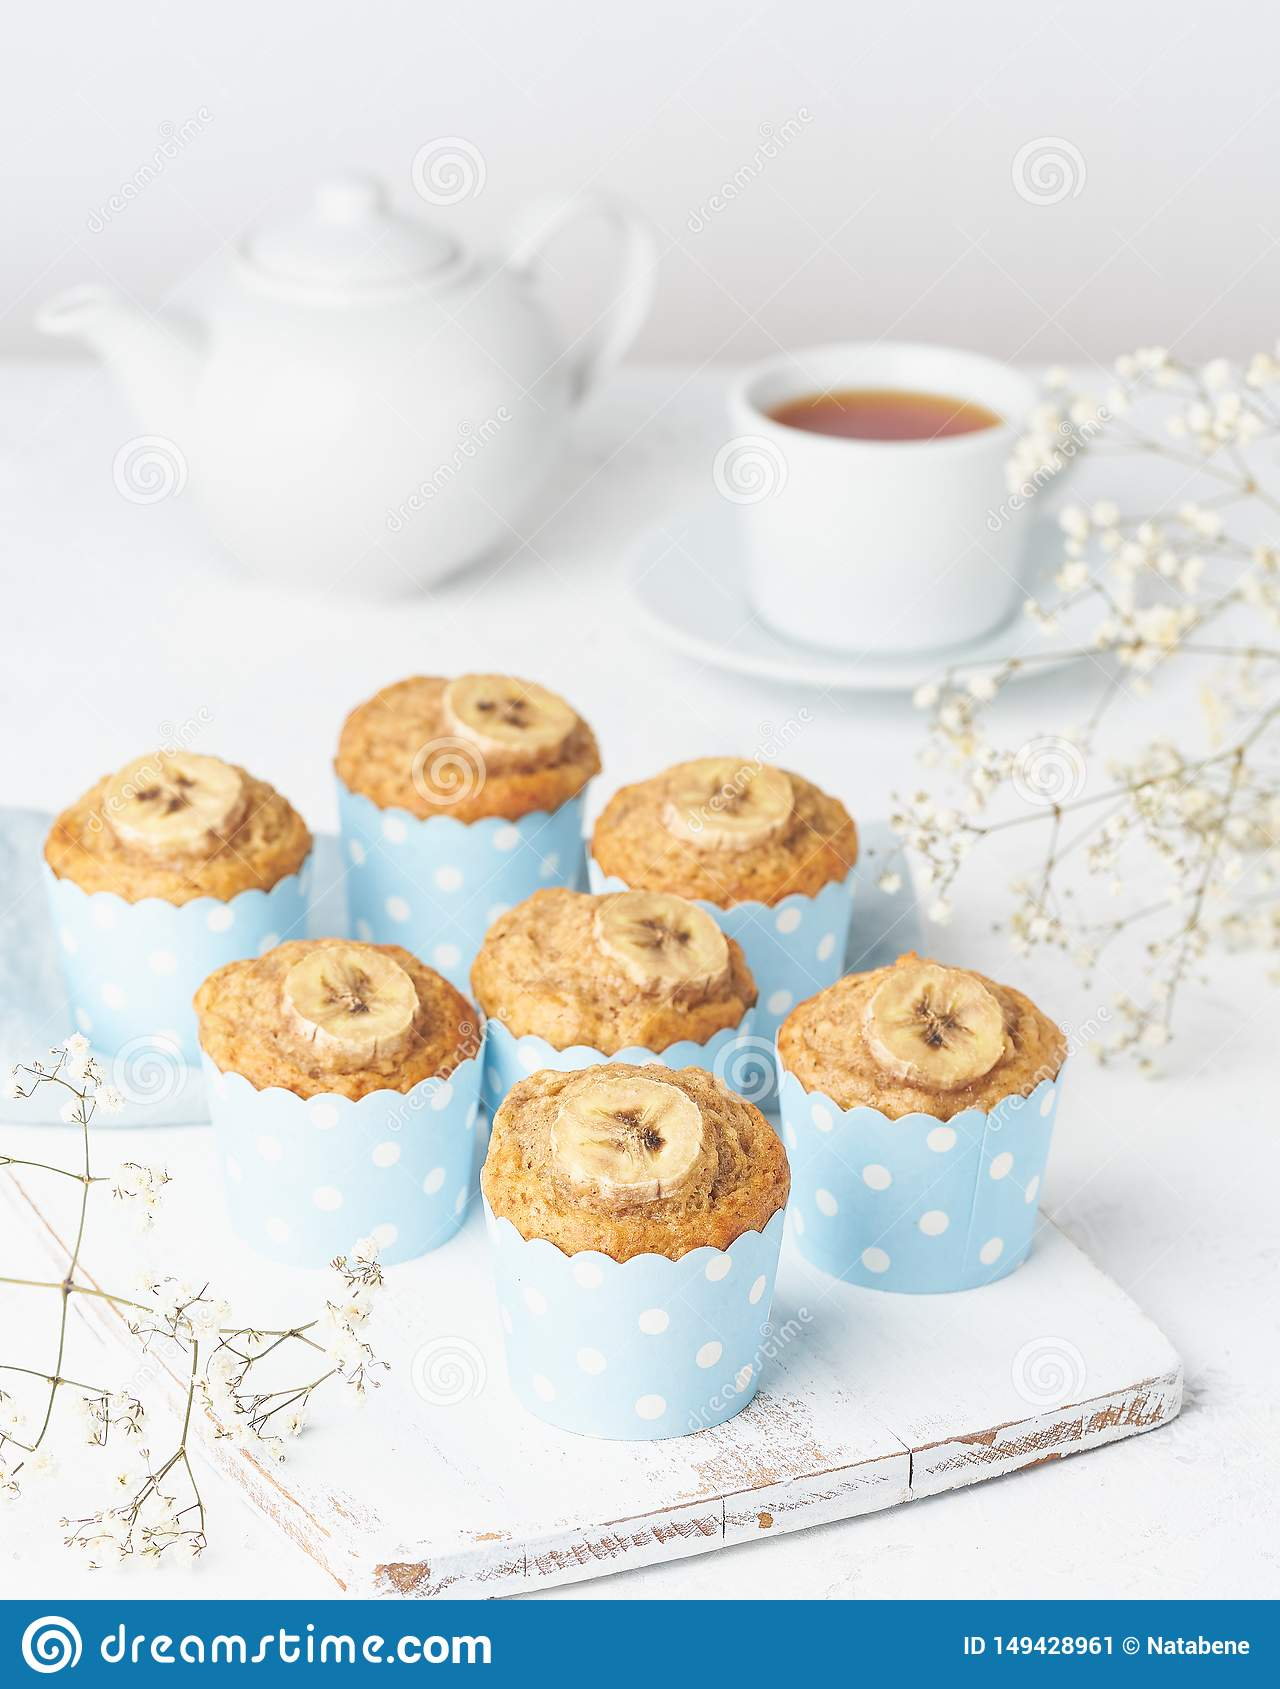 Banana muffin, cupcakes in blue cake cases paper, side view, vertical, white concrete table